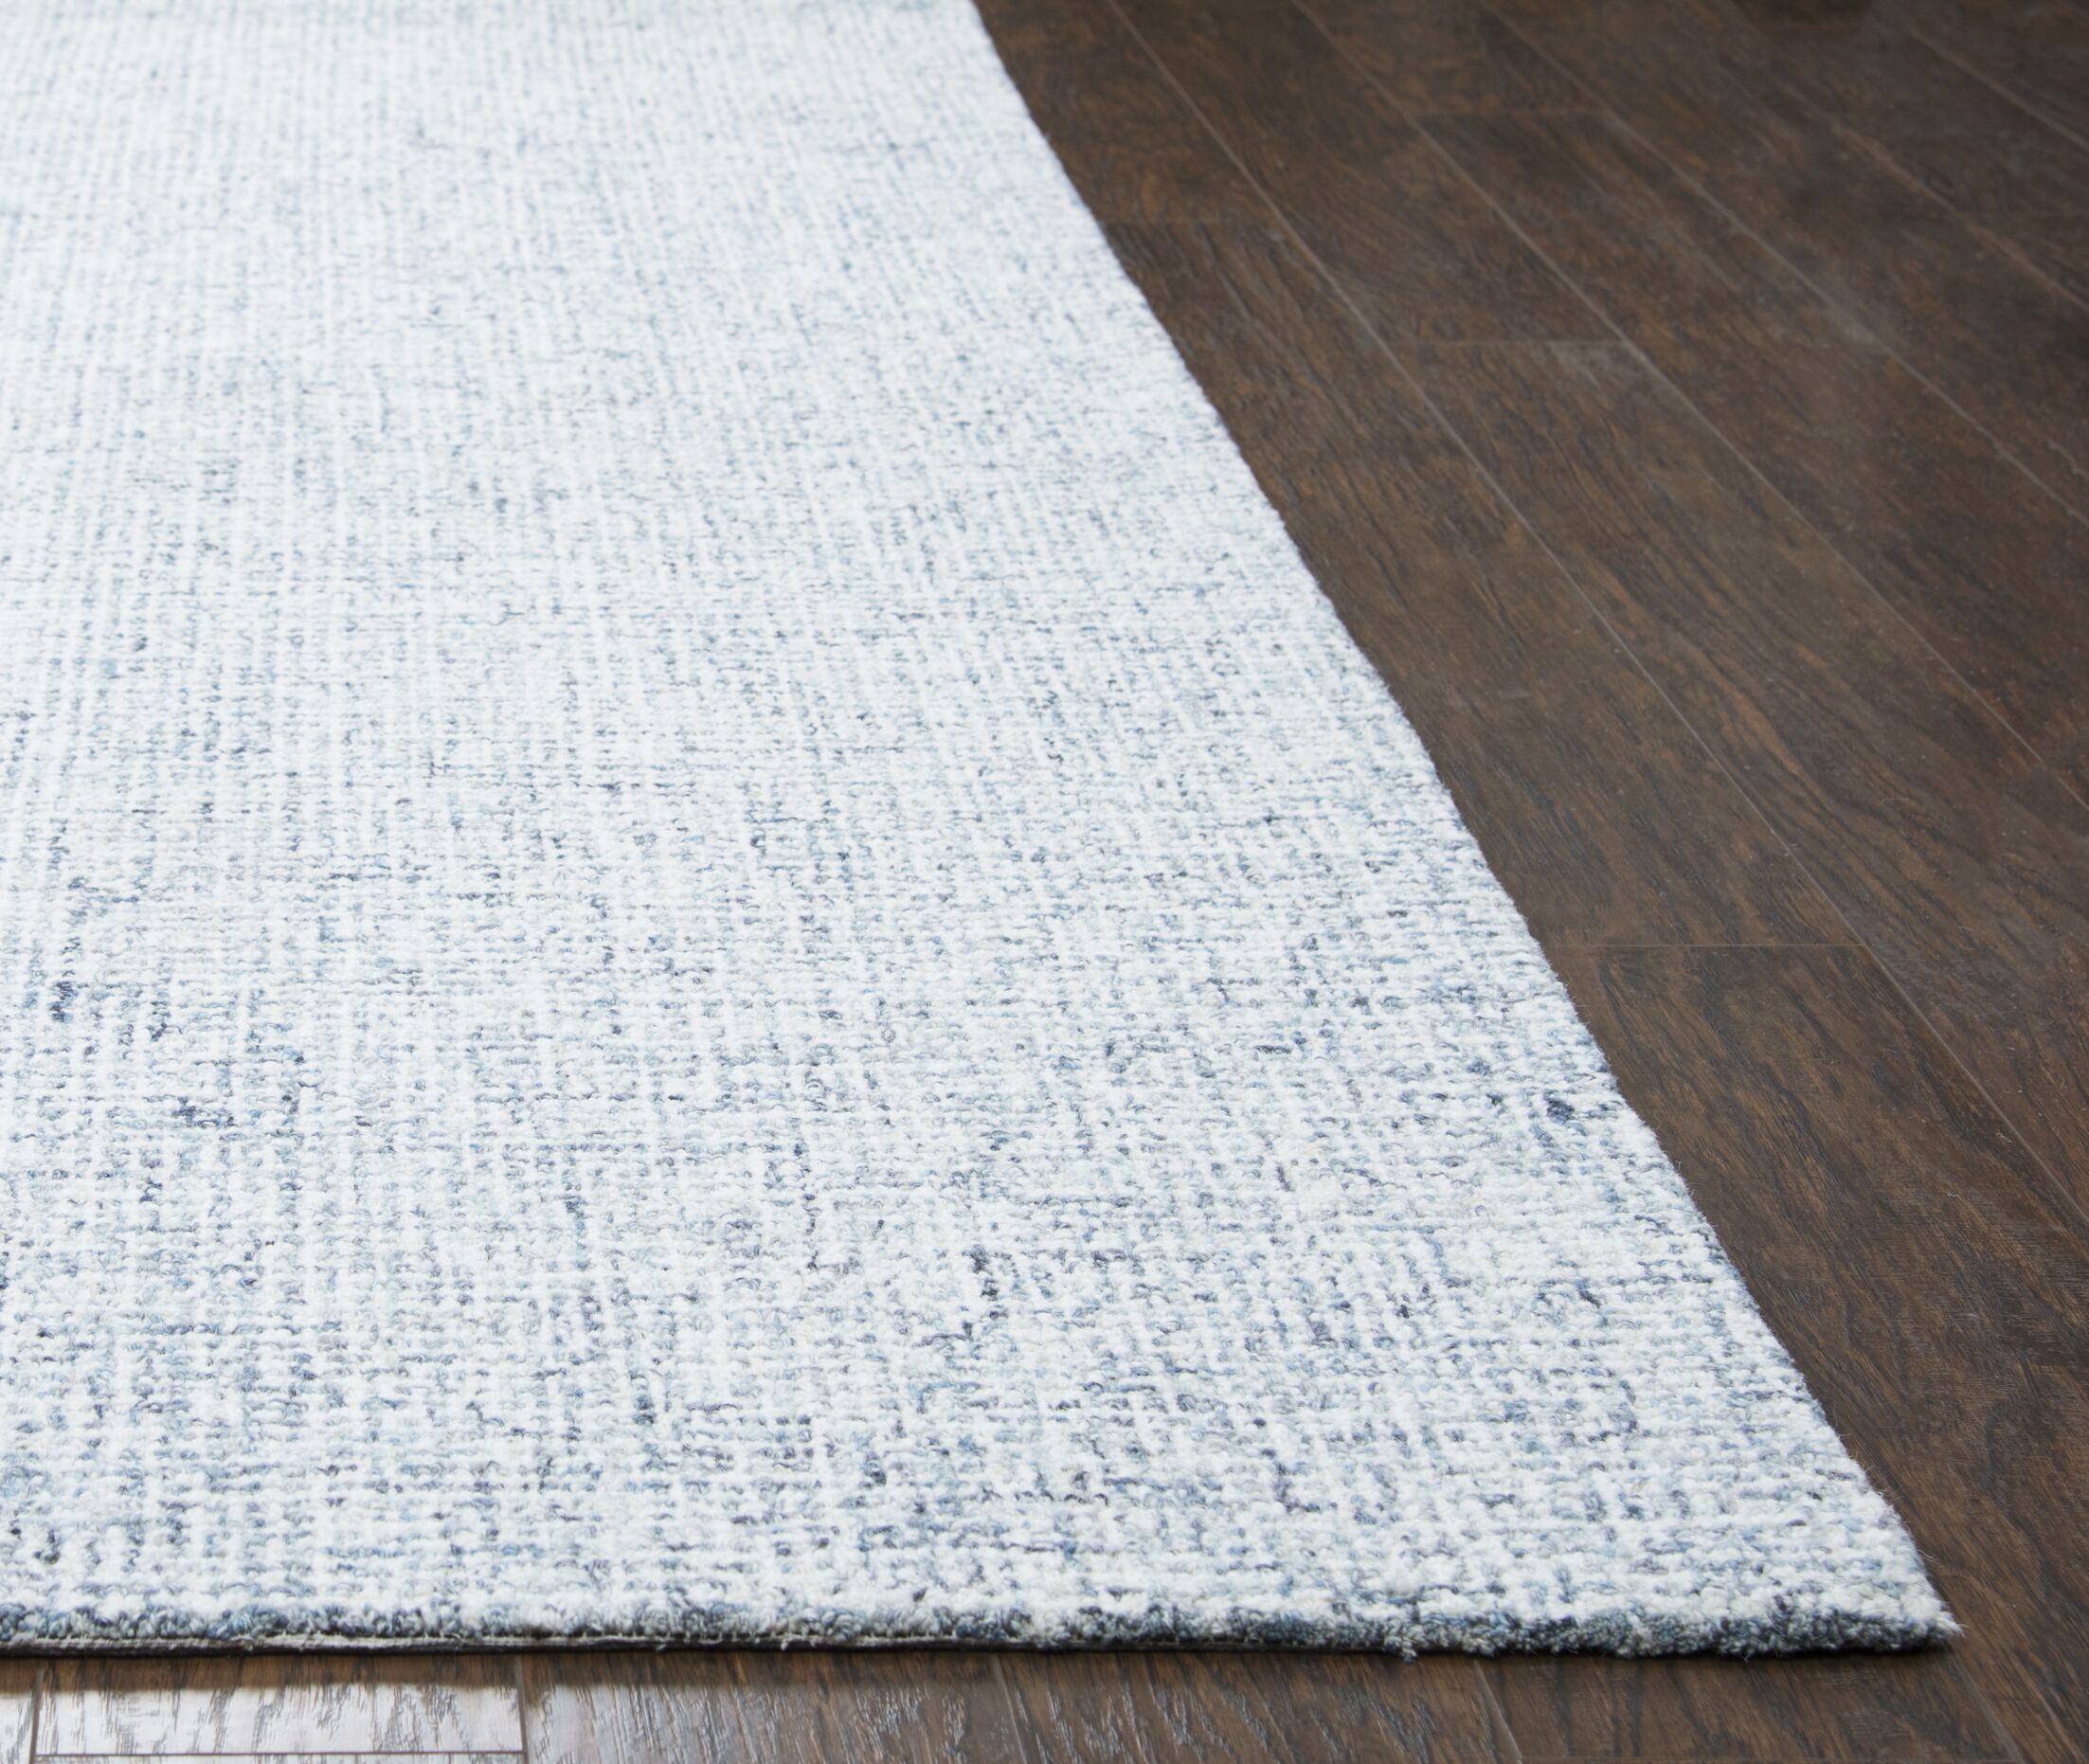 Marsh Hand-Tufted Wool Blue Area Rug Rug Size: Round 10'